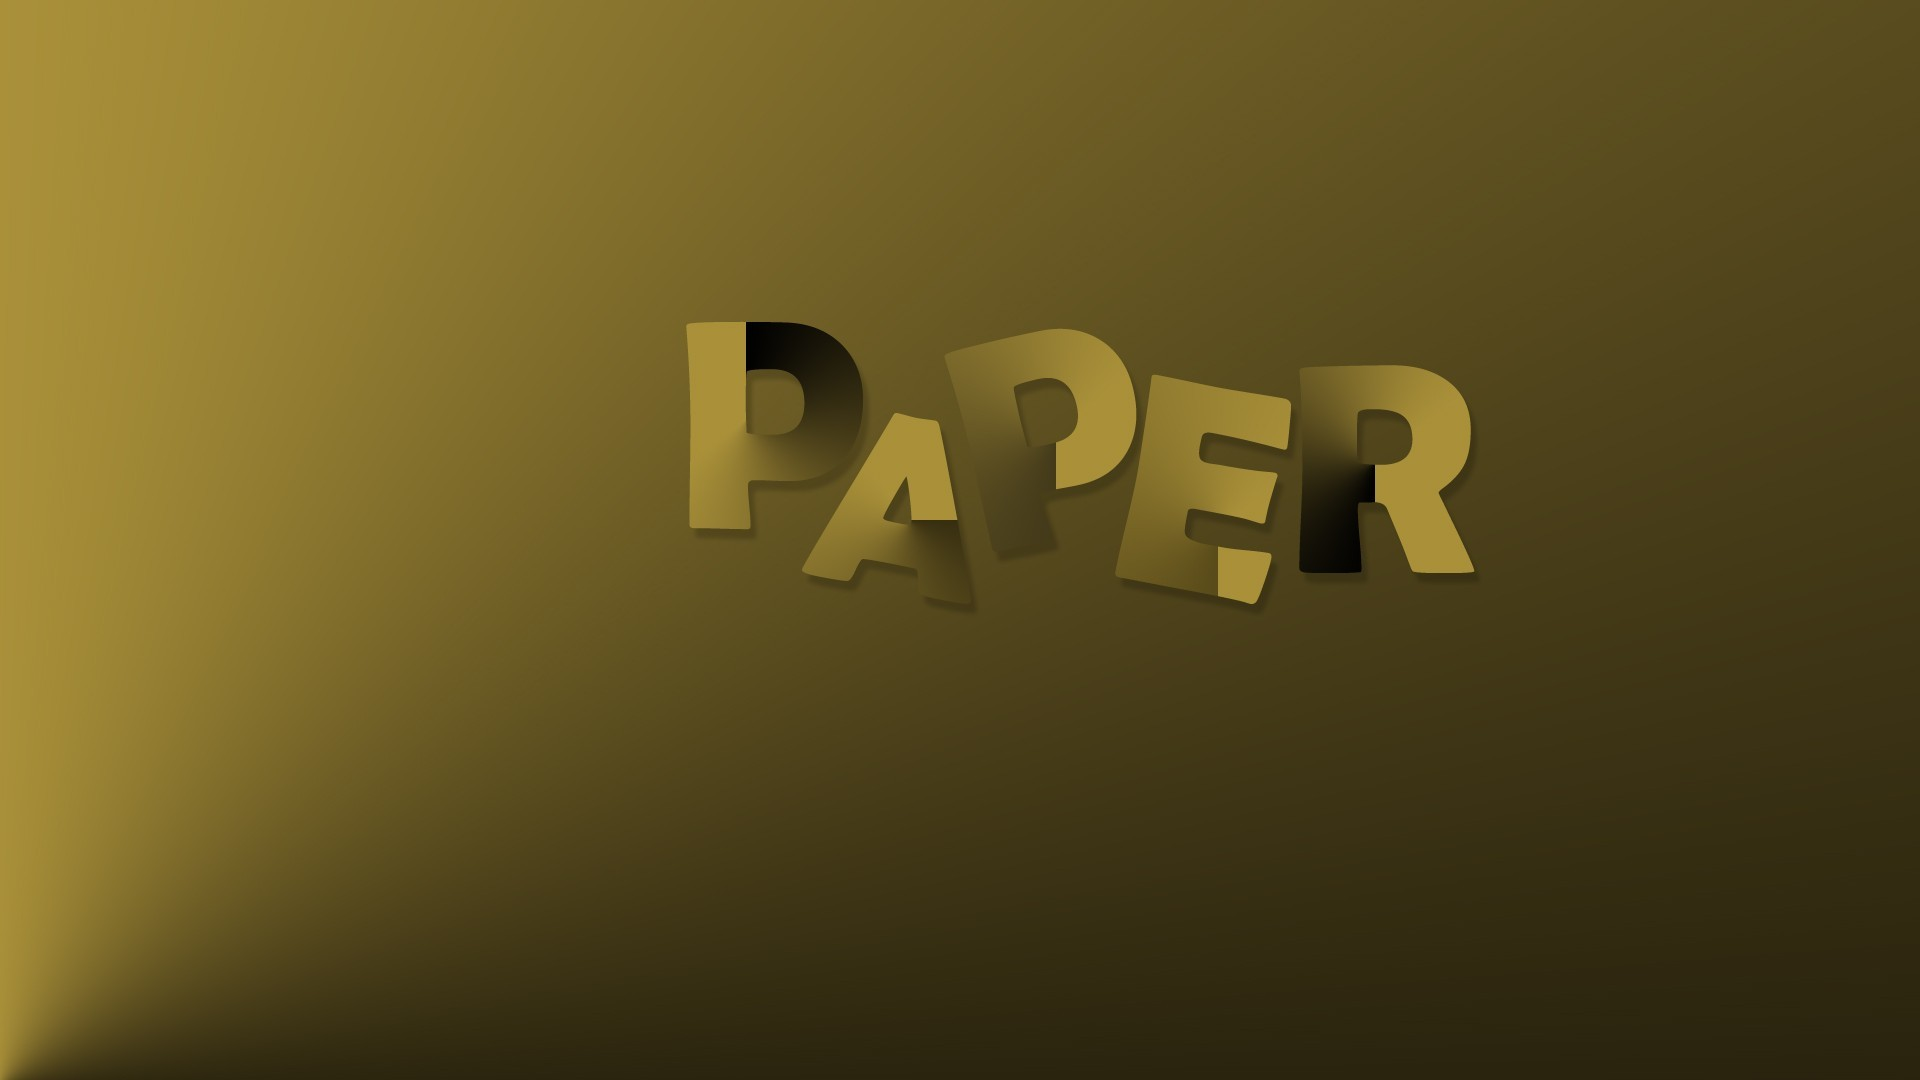 paper text brown Typography HD Wallpaper